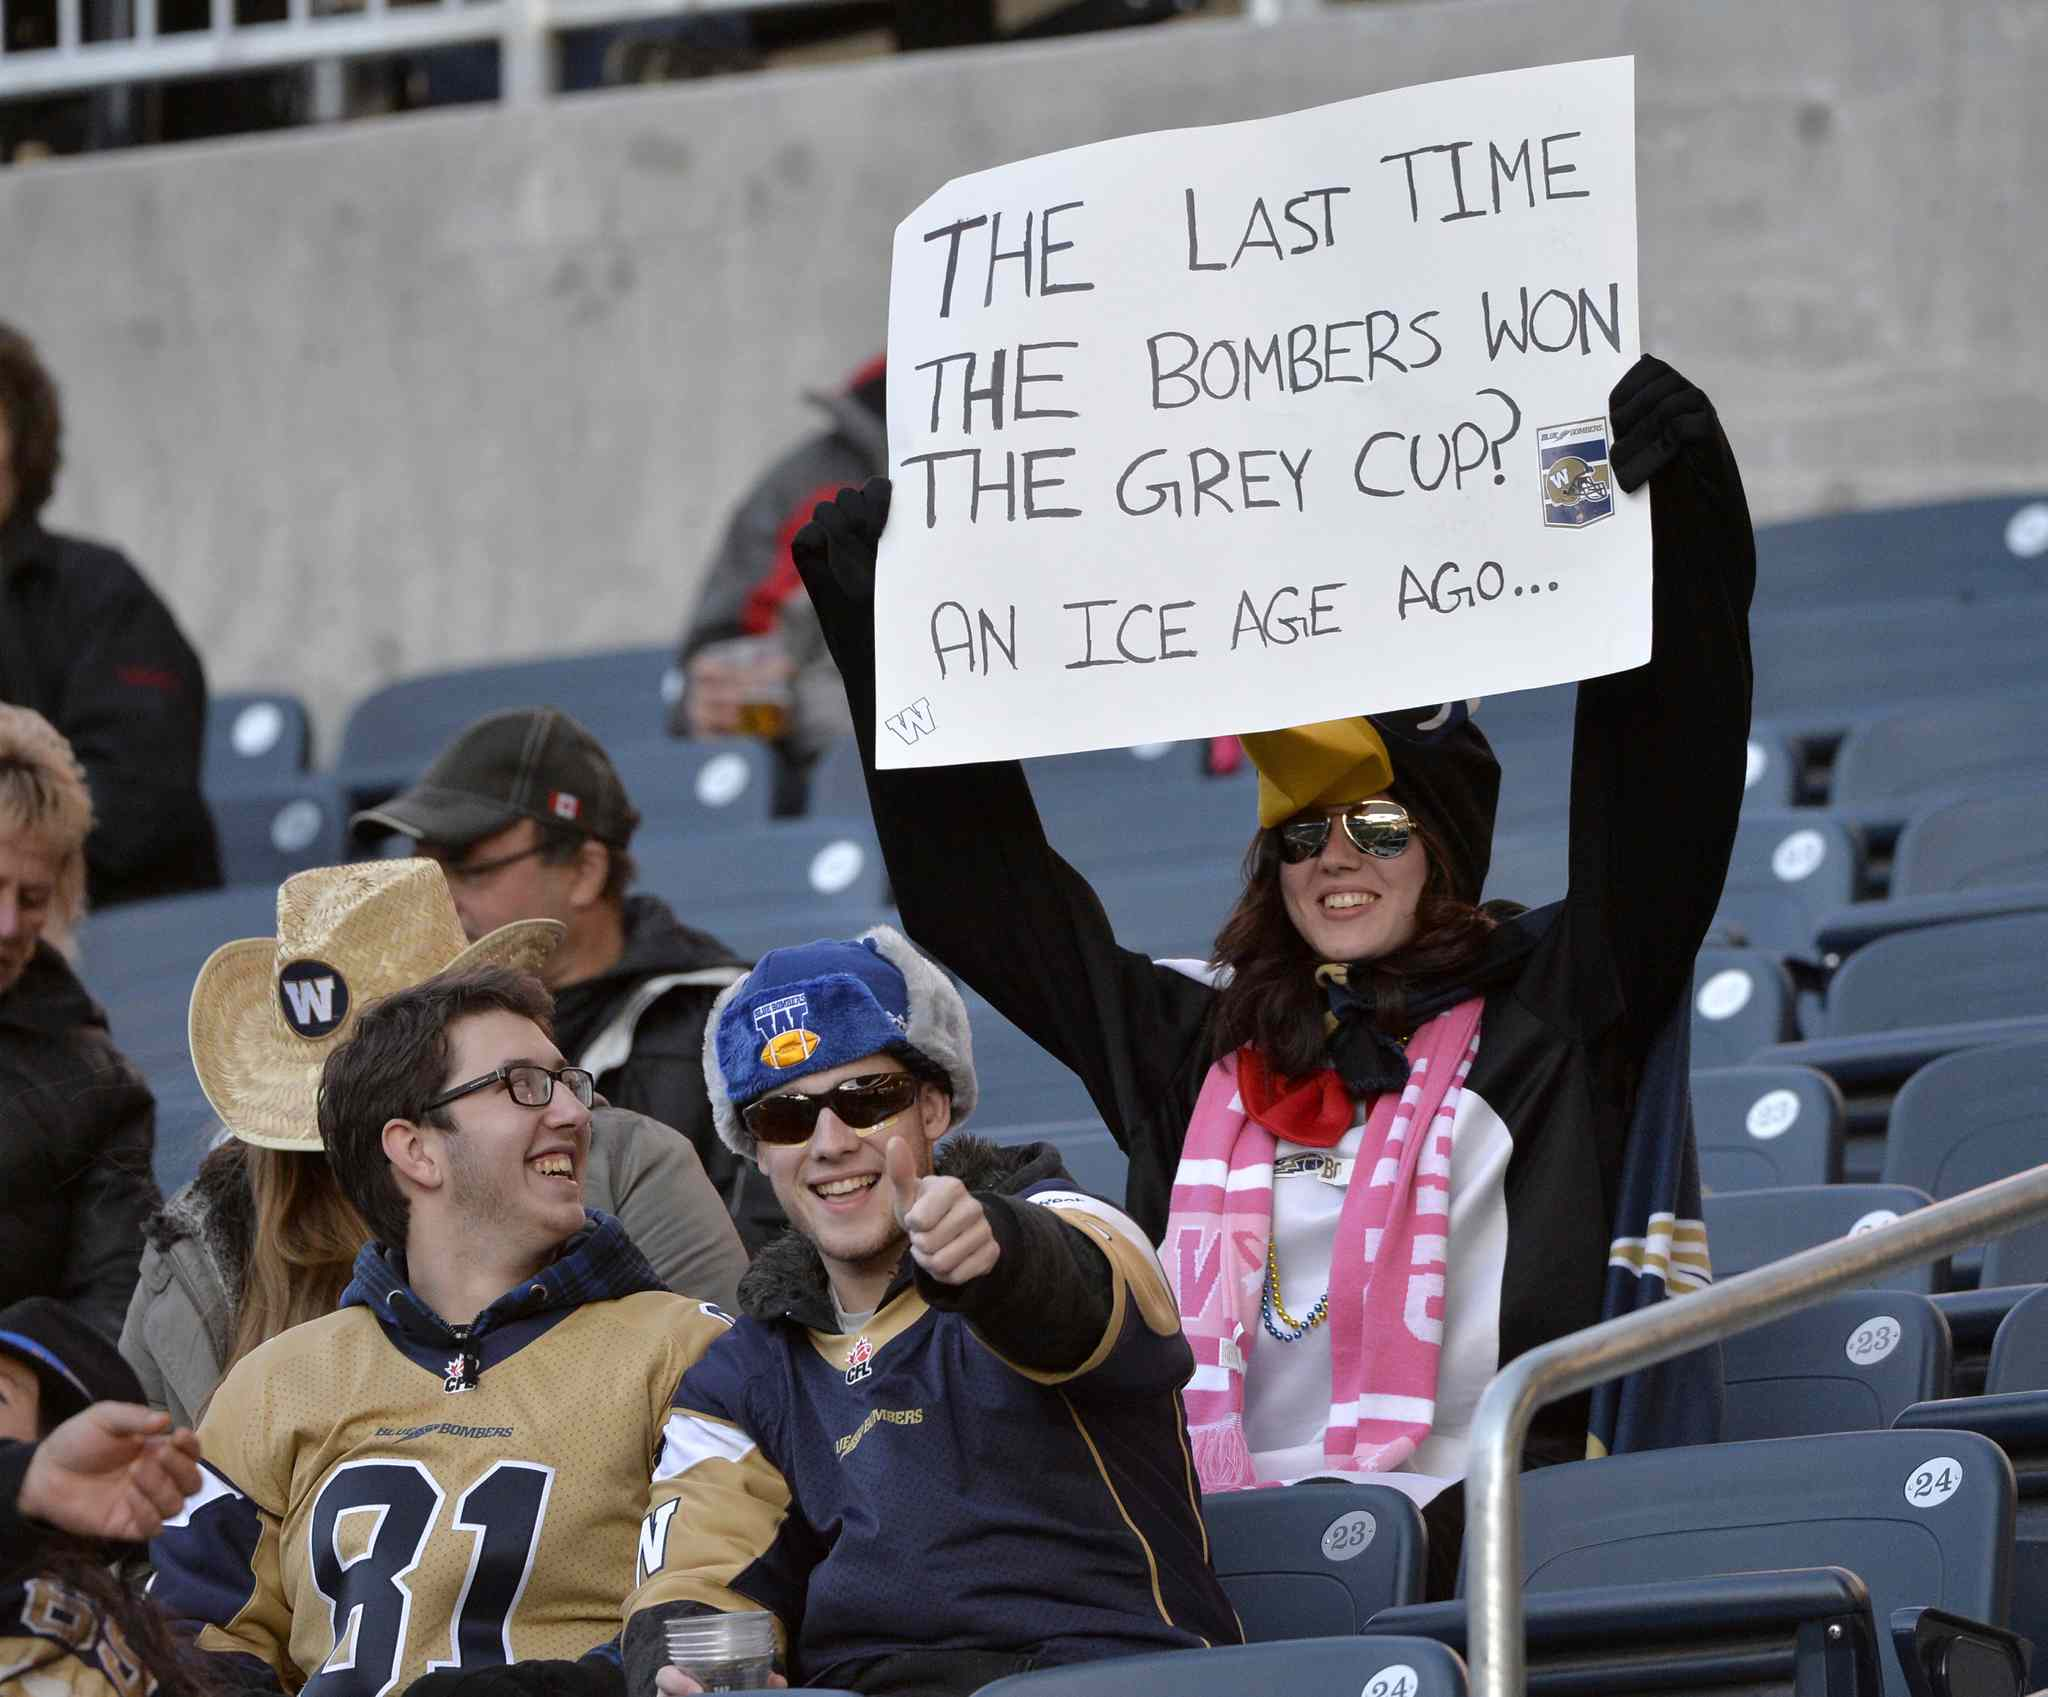 A Winnipeg Blue Bombers fan delivers a message.